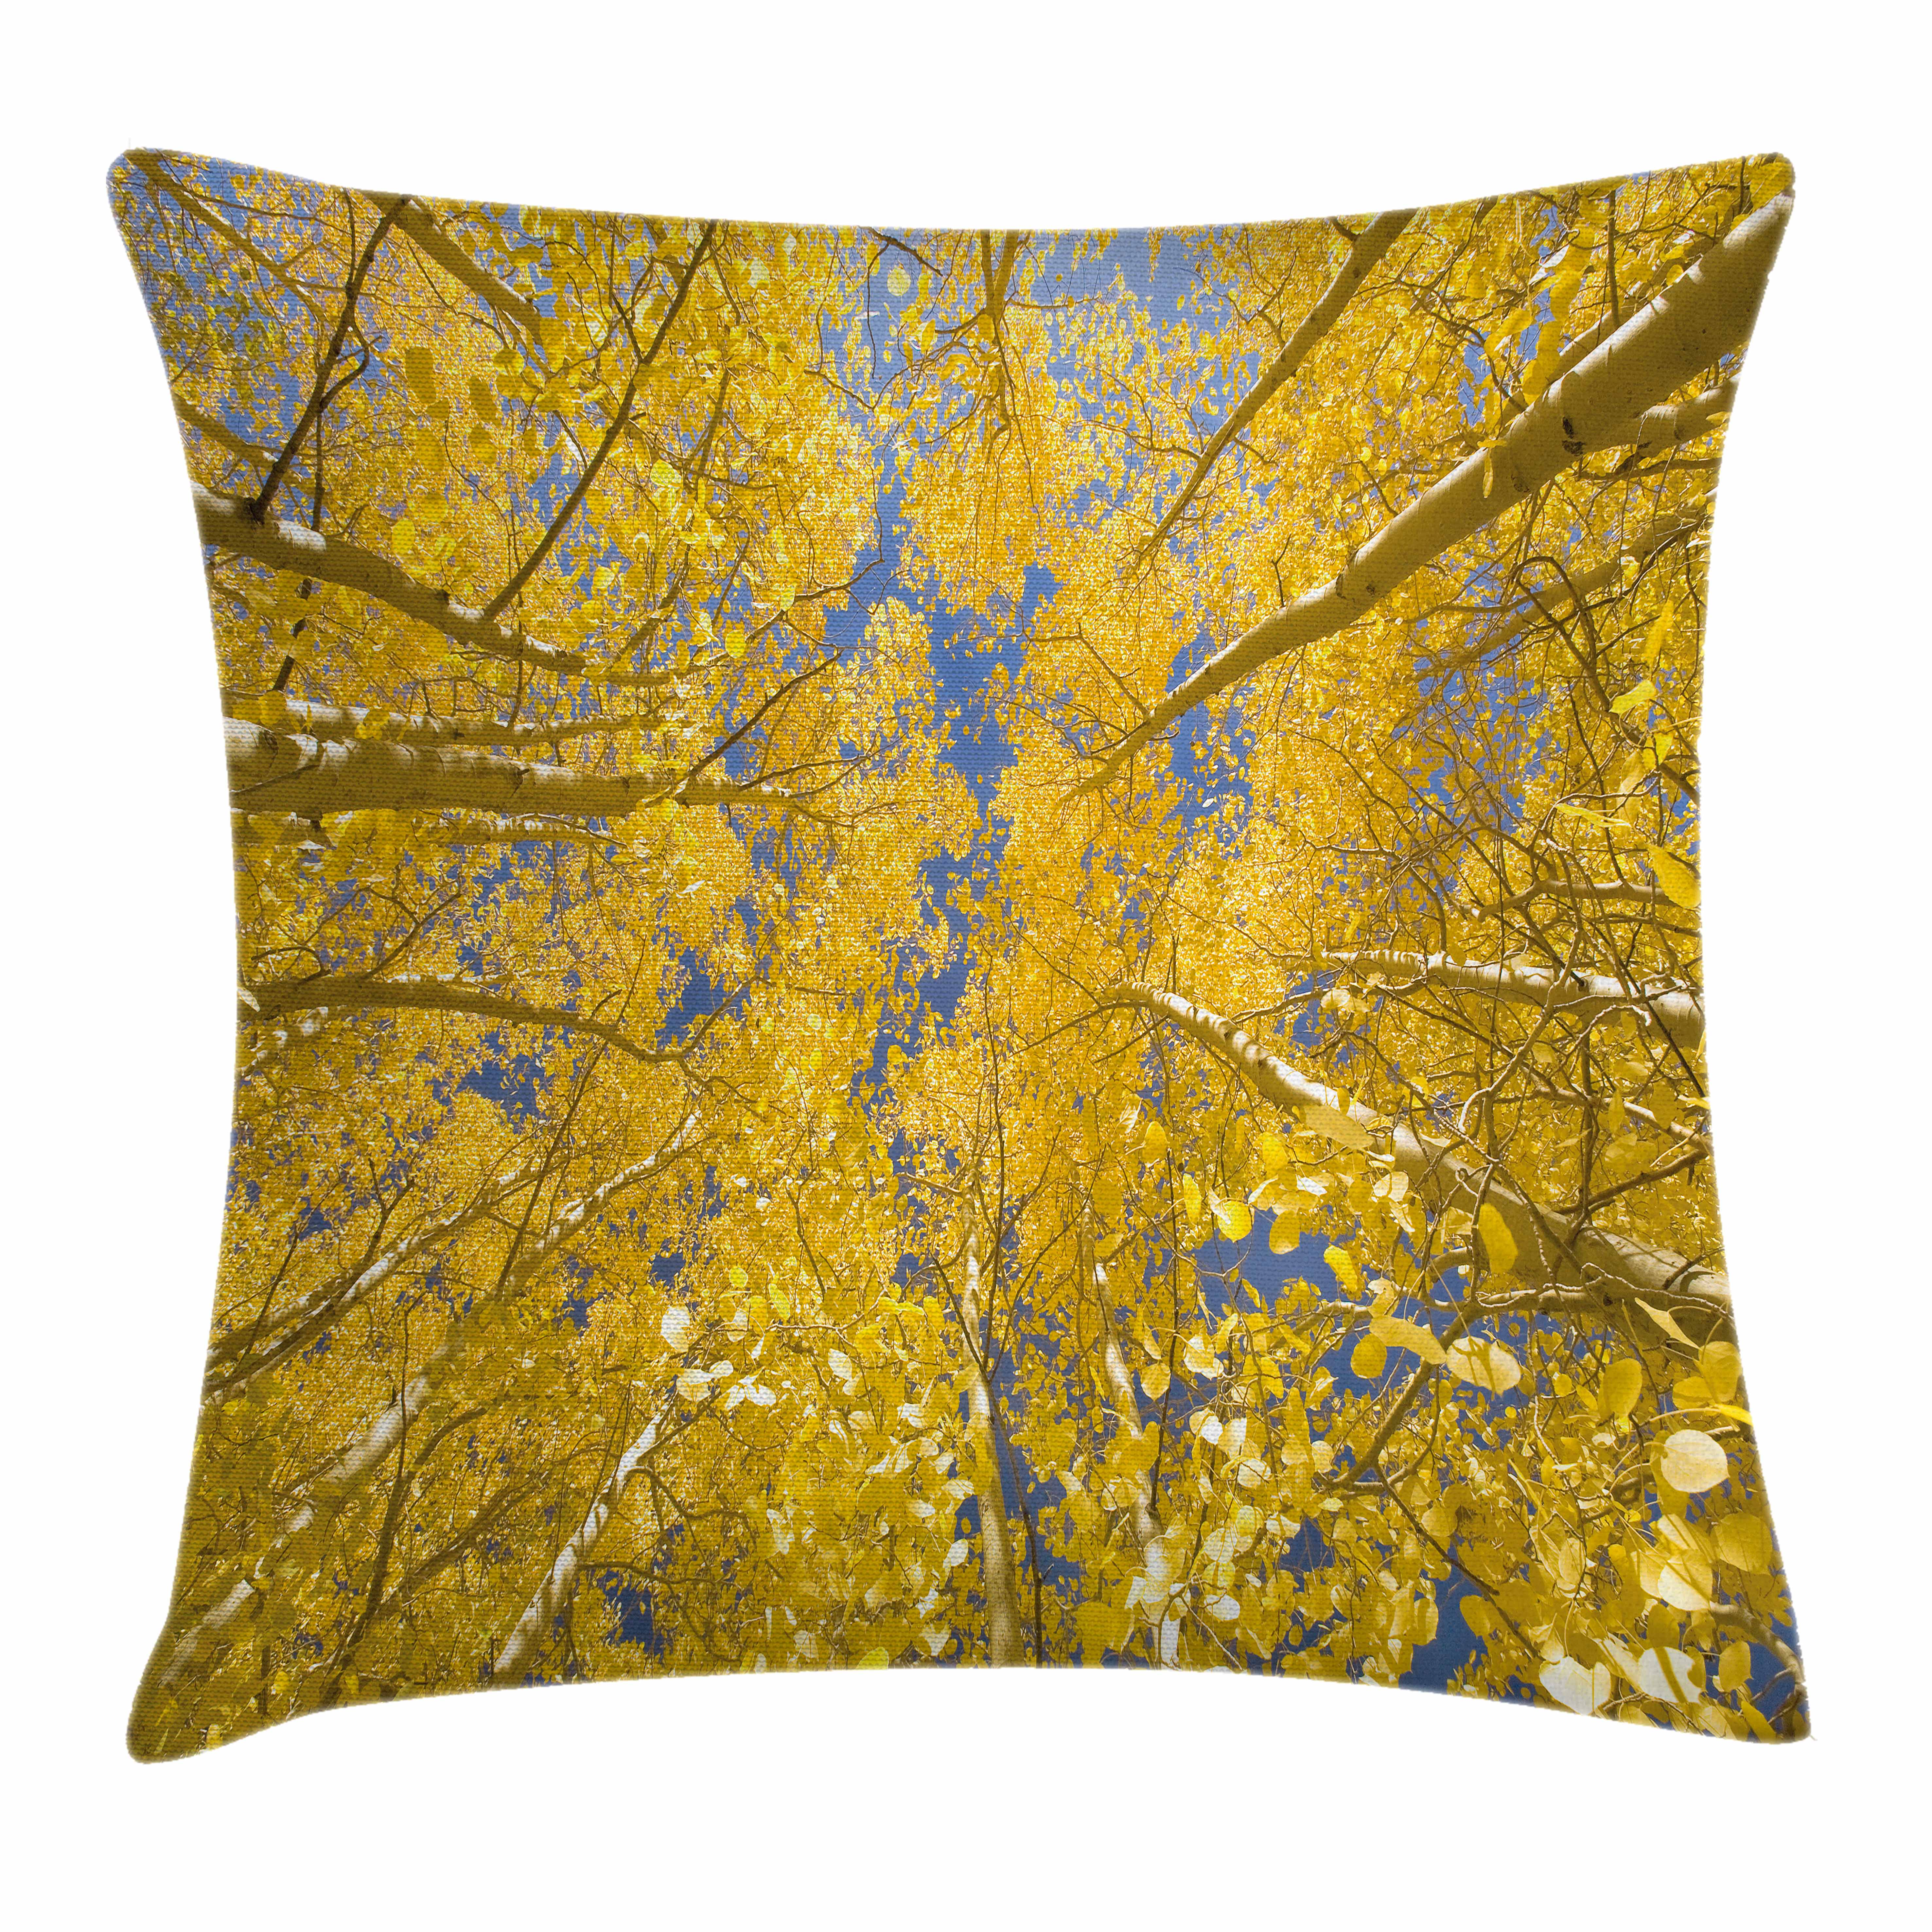 Yellow and Blue Throw Pillow Cushion Cover, Looking Skyward amongst the Patch of Sun-lit Aspen Trees in Autumn Life Print, Decorative Square Accent Pillow Case, 16 X 16 Inches, Yellow, by Ambesonne